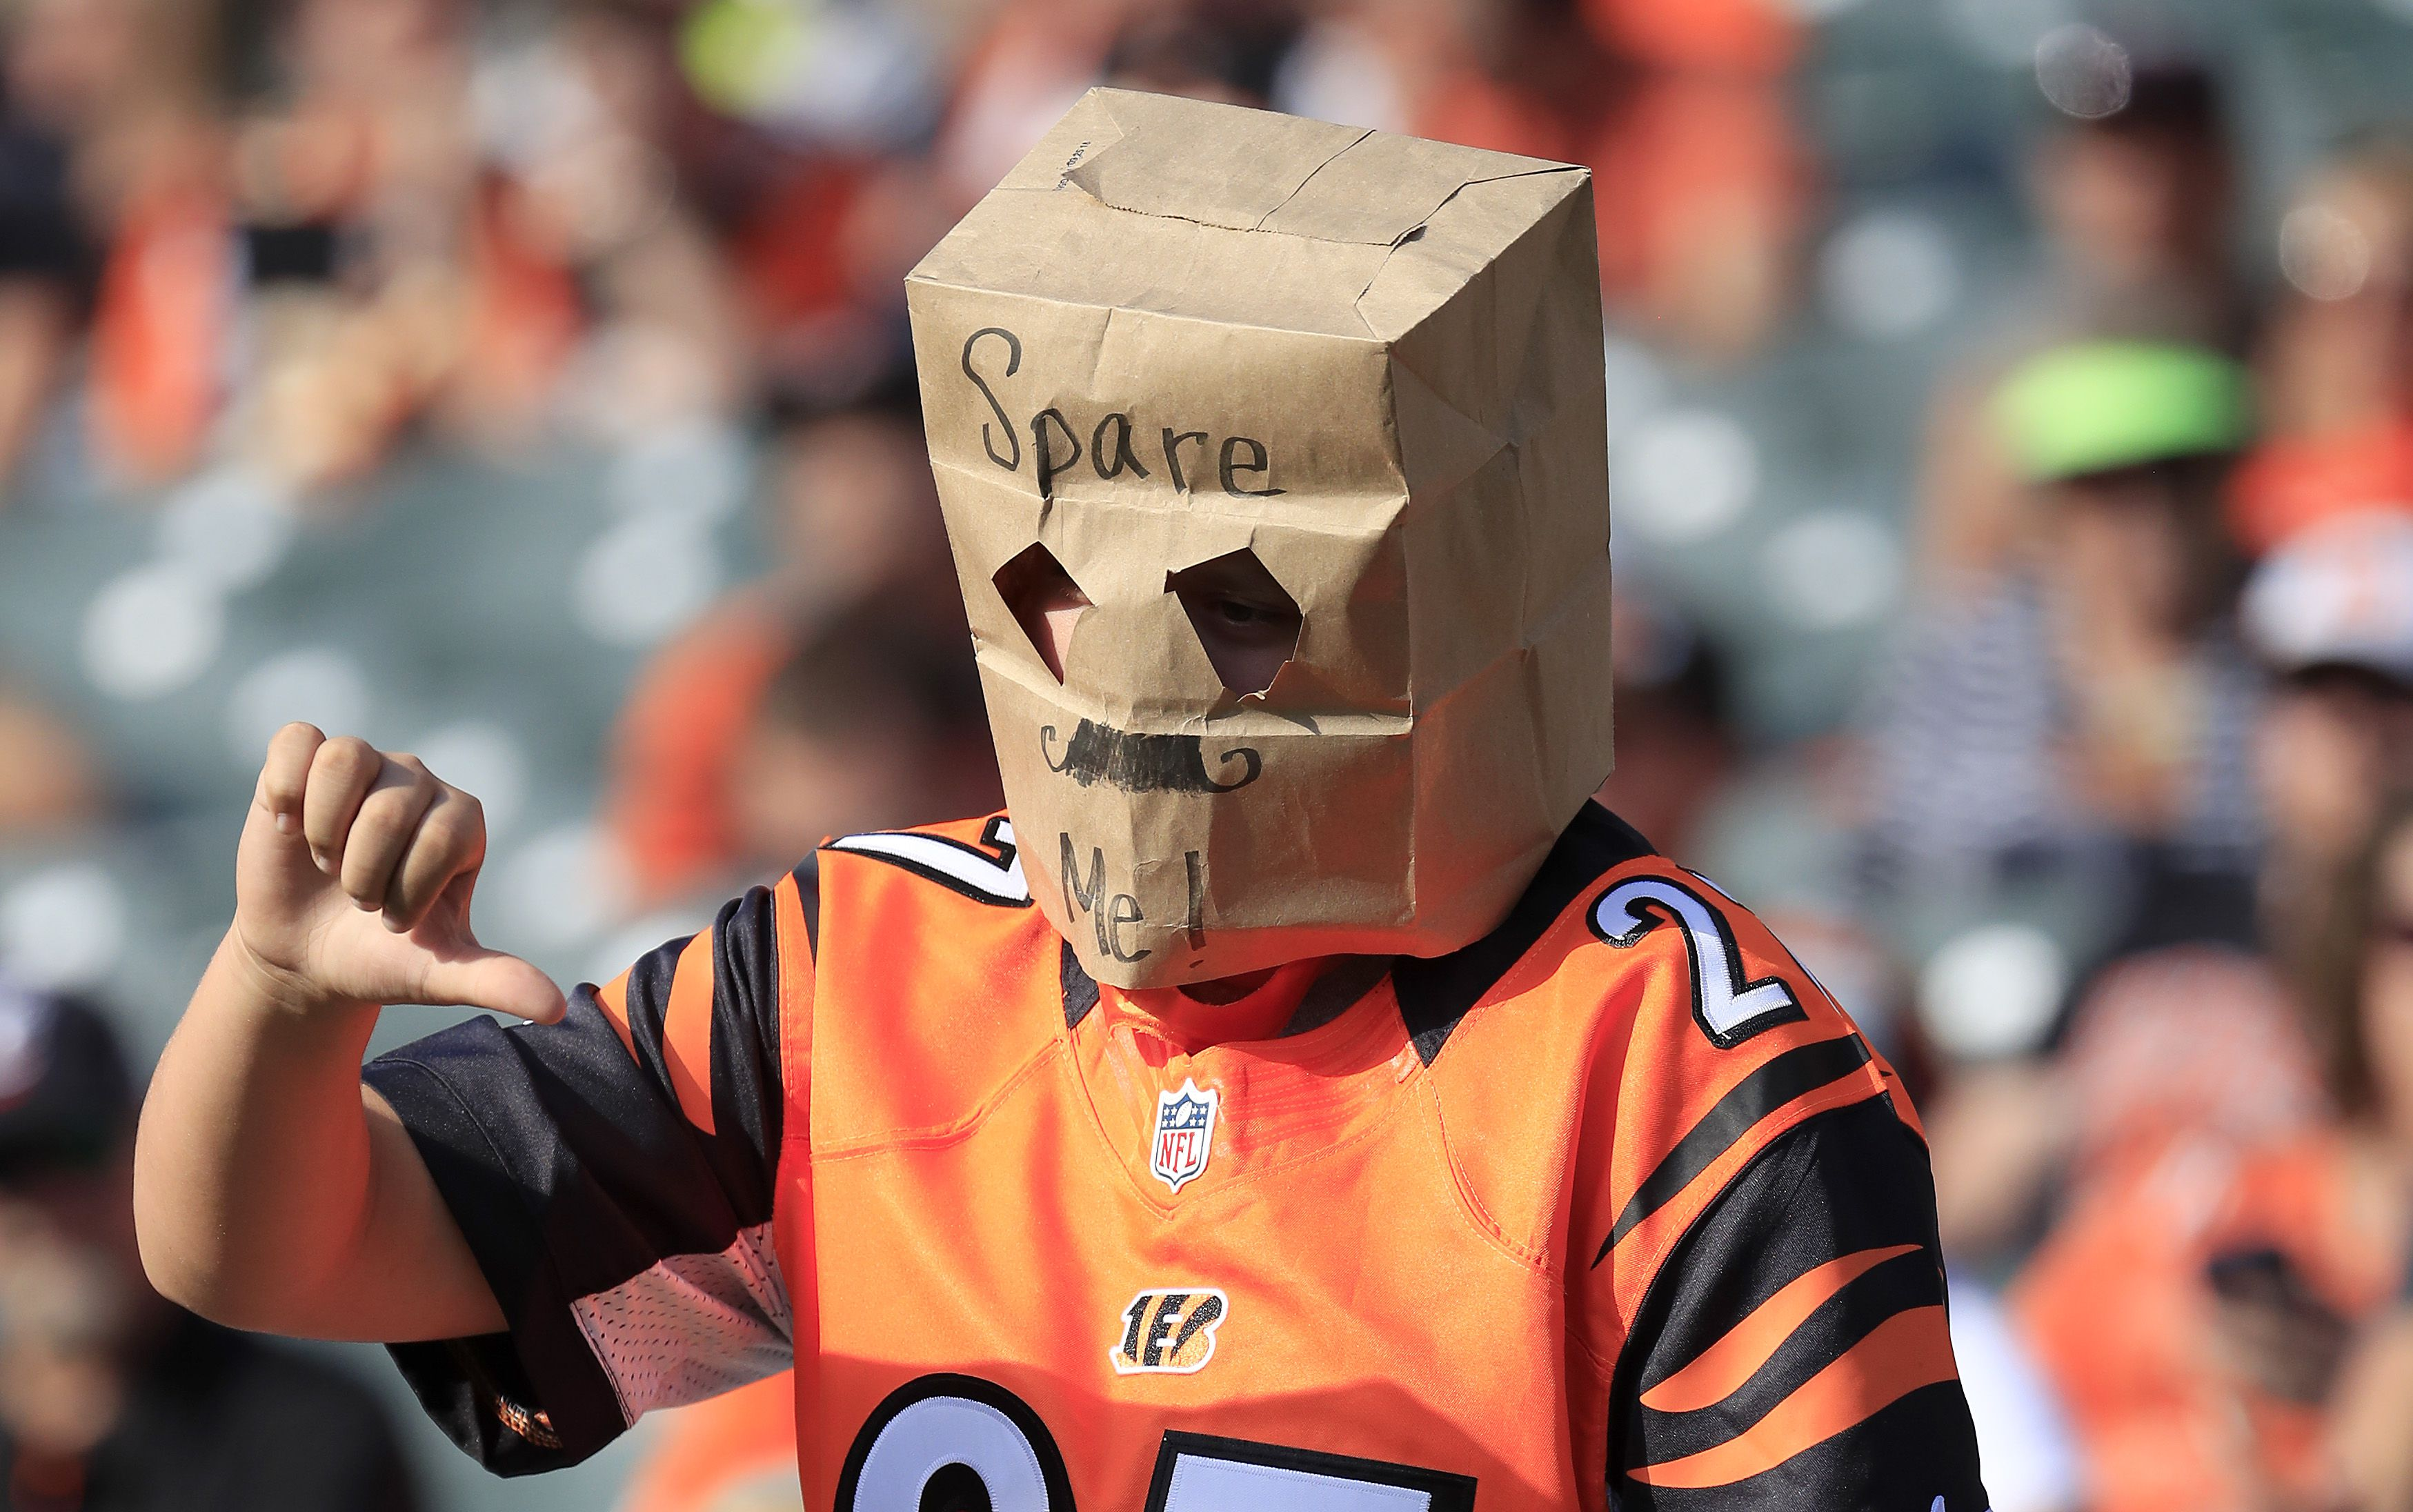 Bengals fan with bag on head